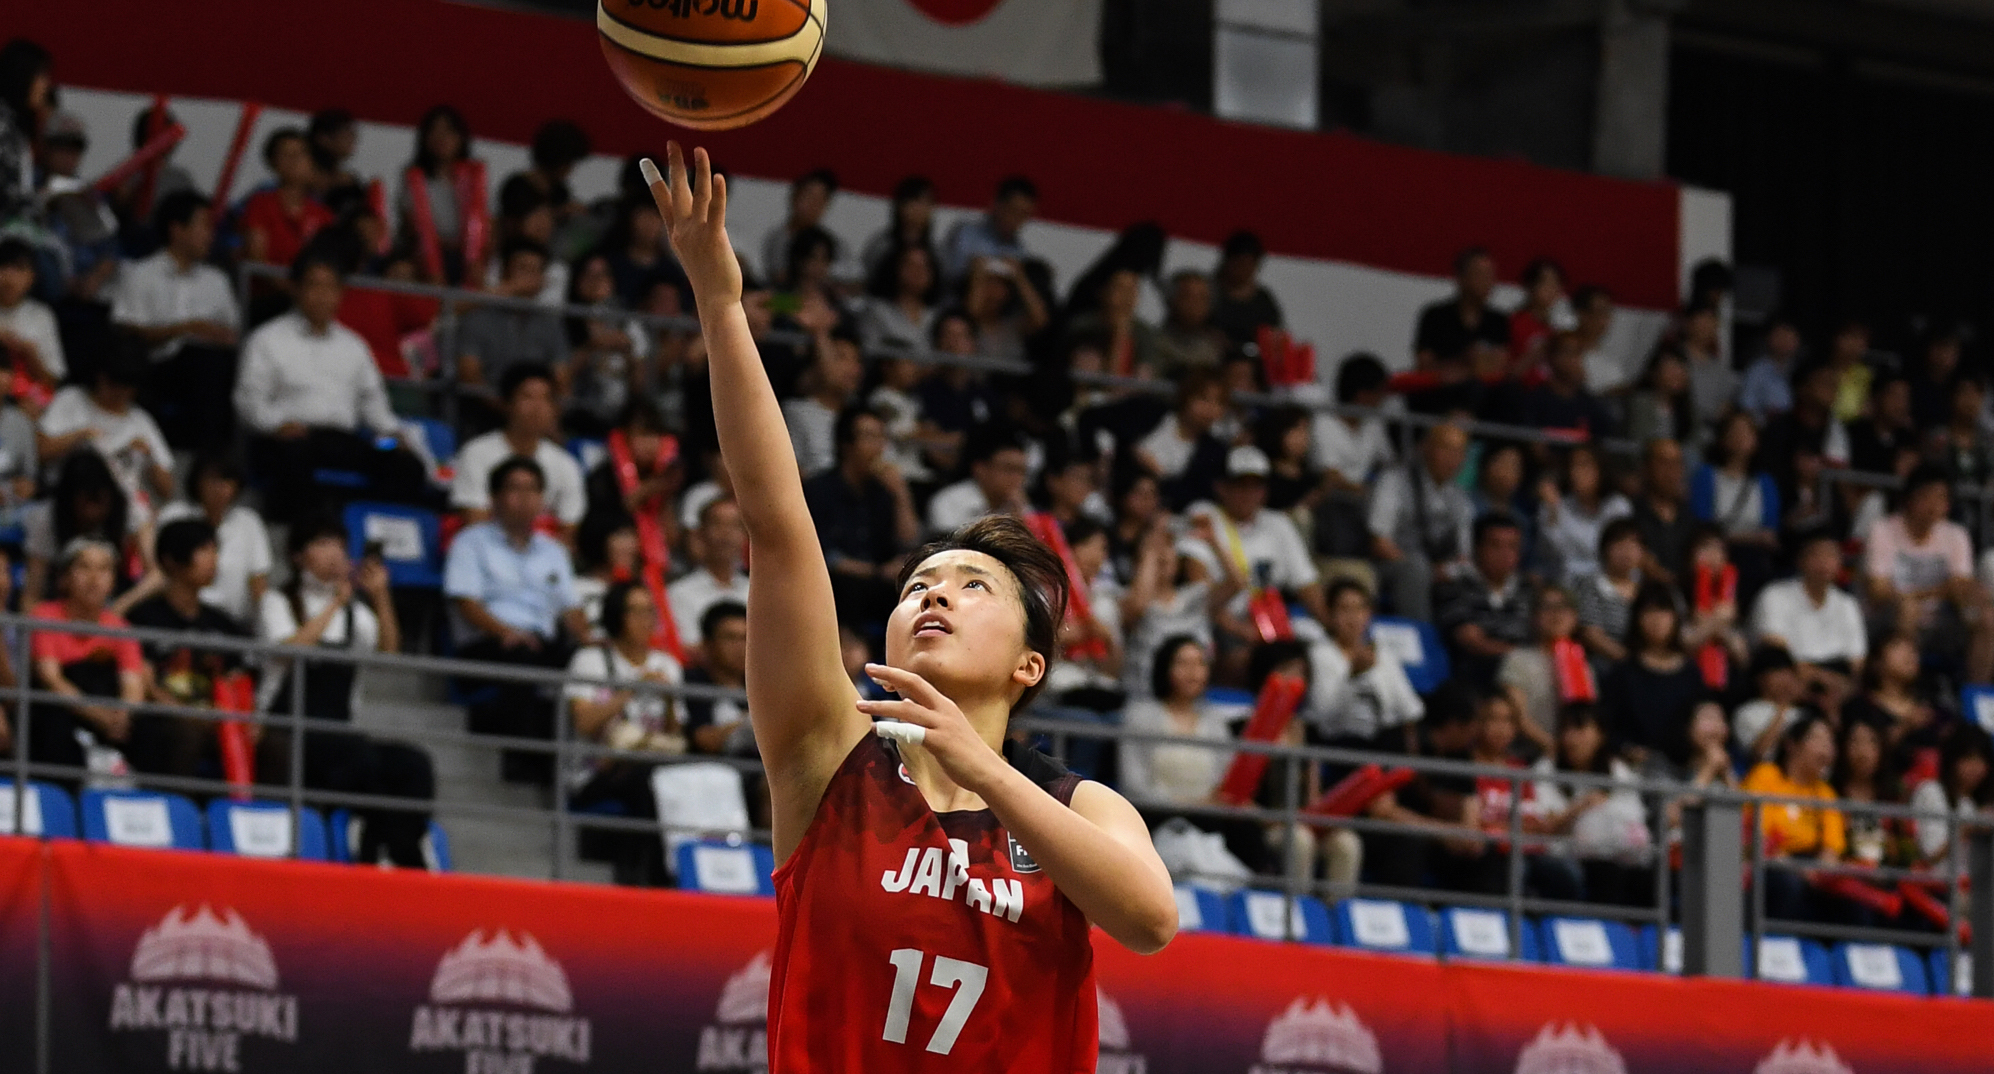 A basketball floats just above the tips of Naho's fingers as she lays it in for two points.